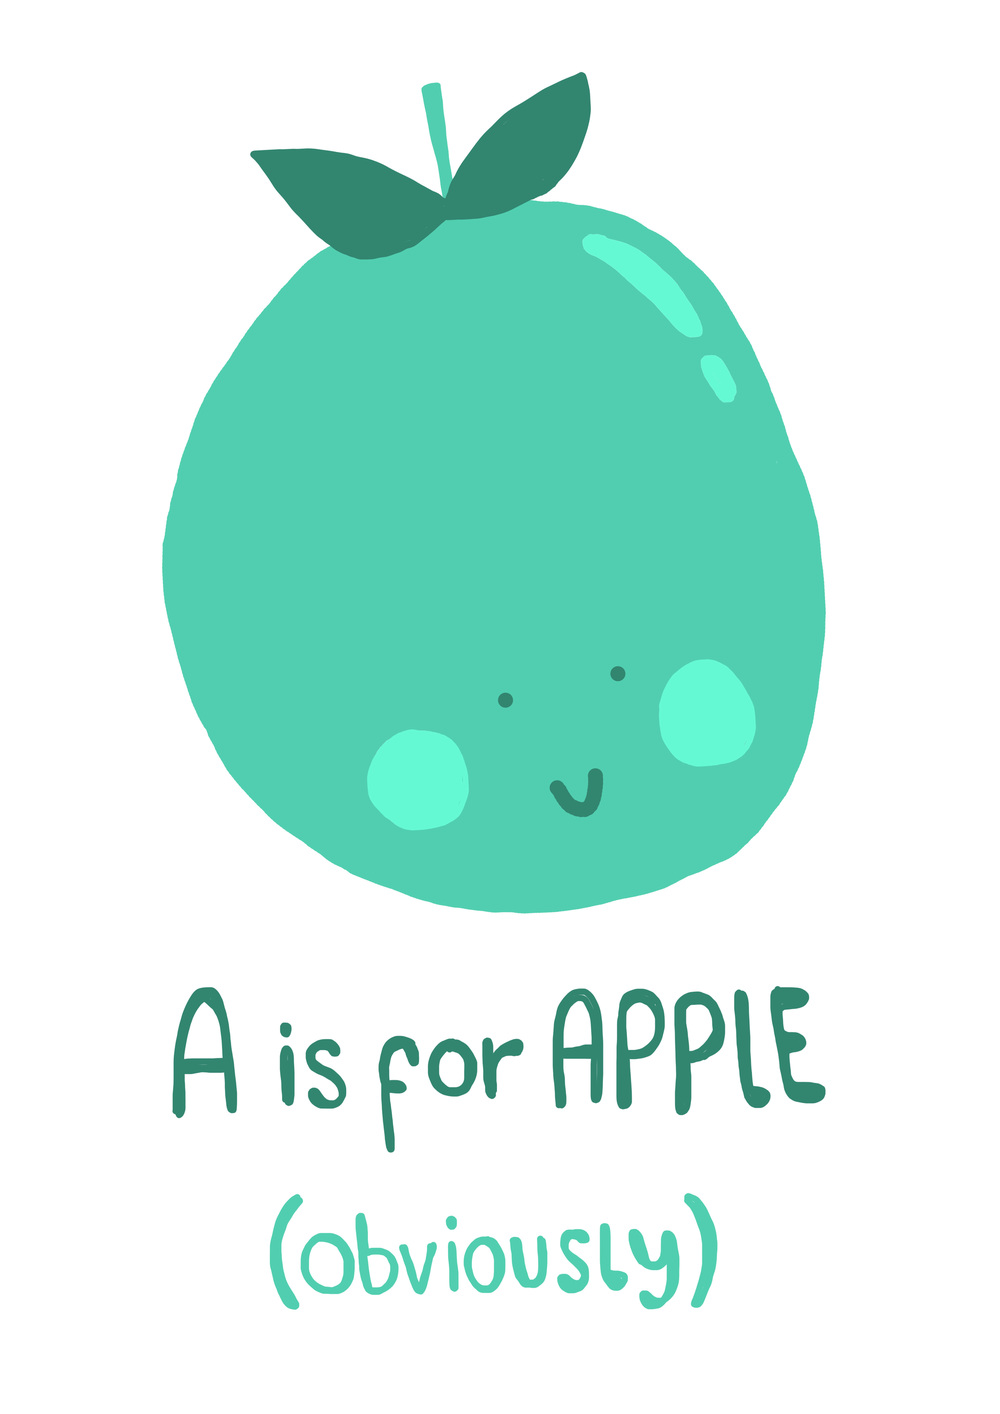 A_is_for_APPLE.jpg